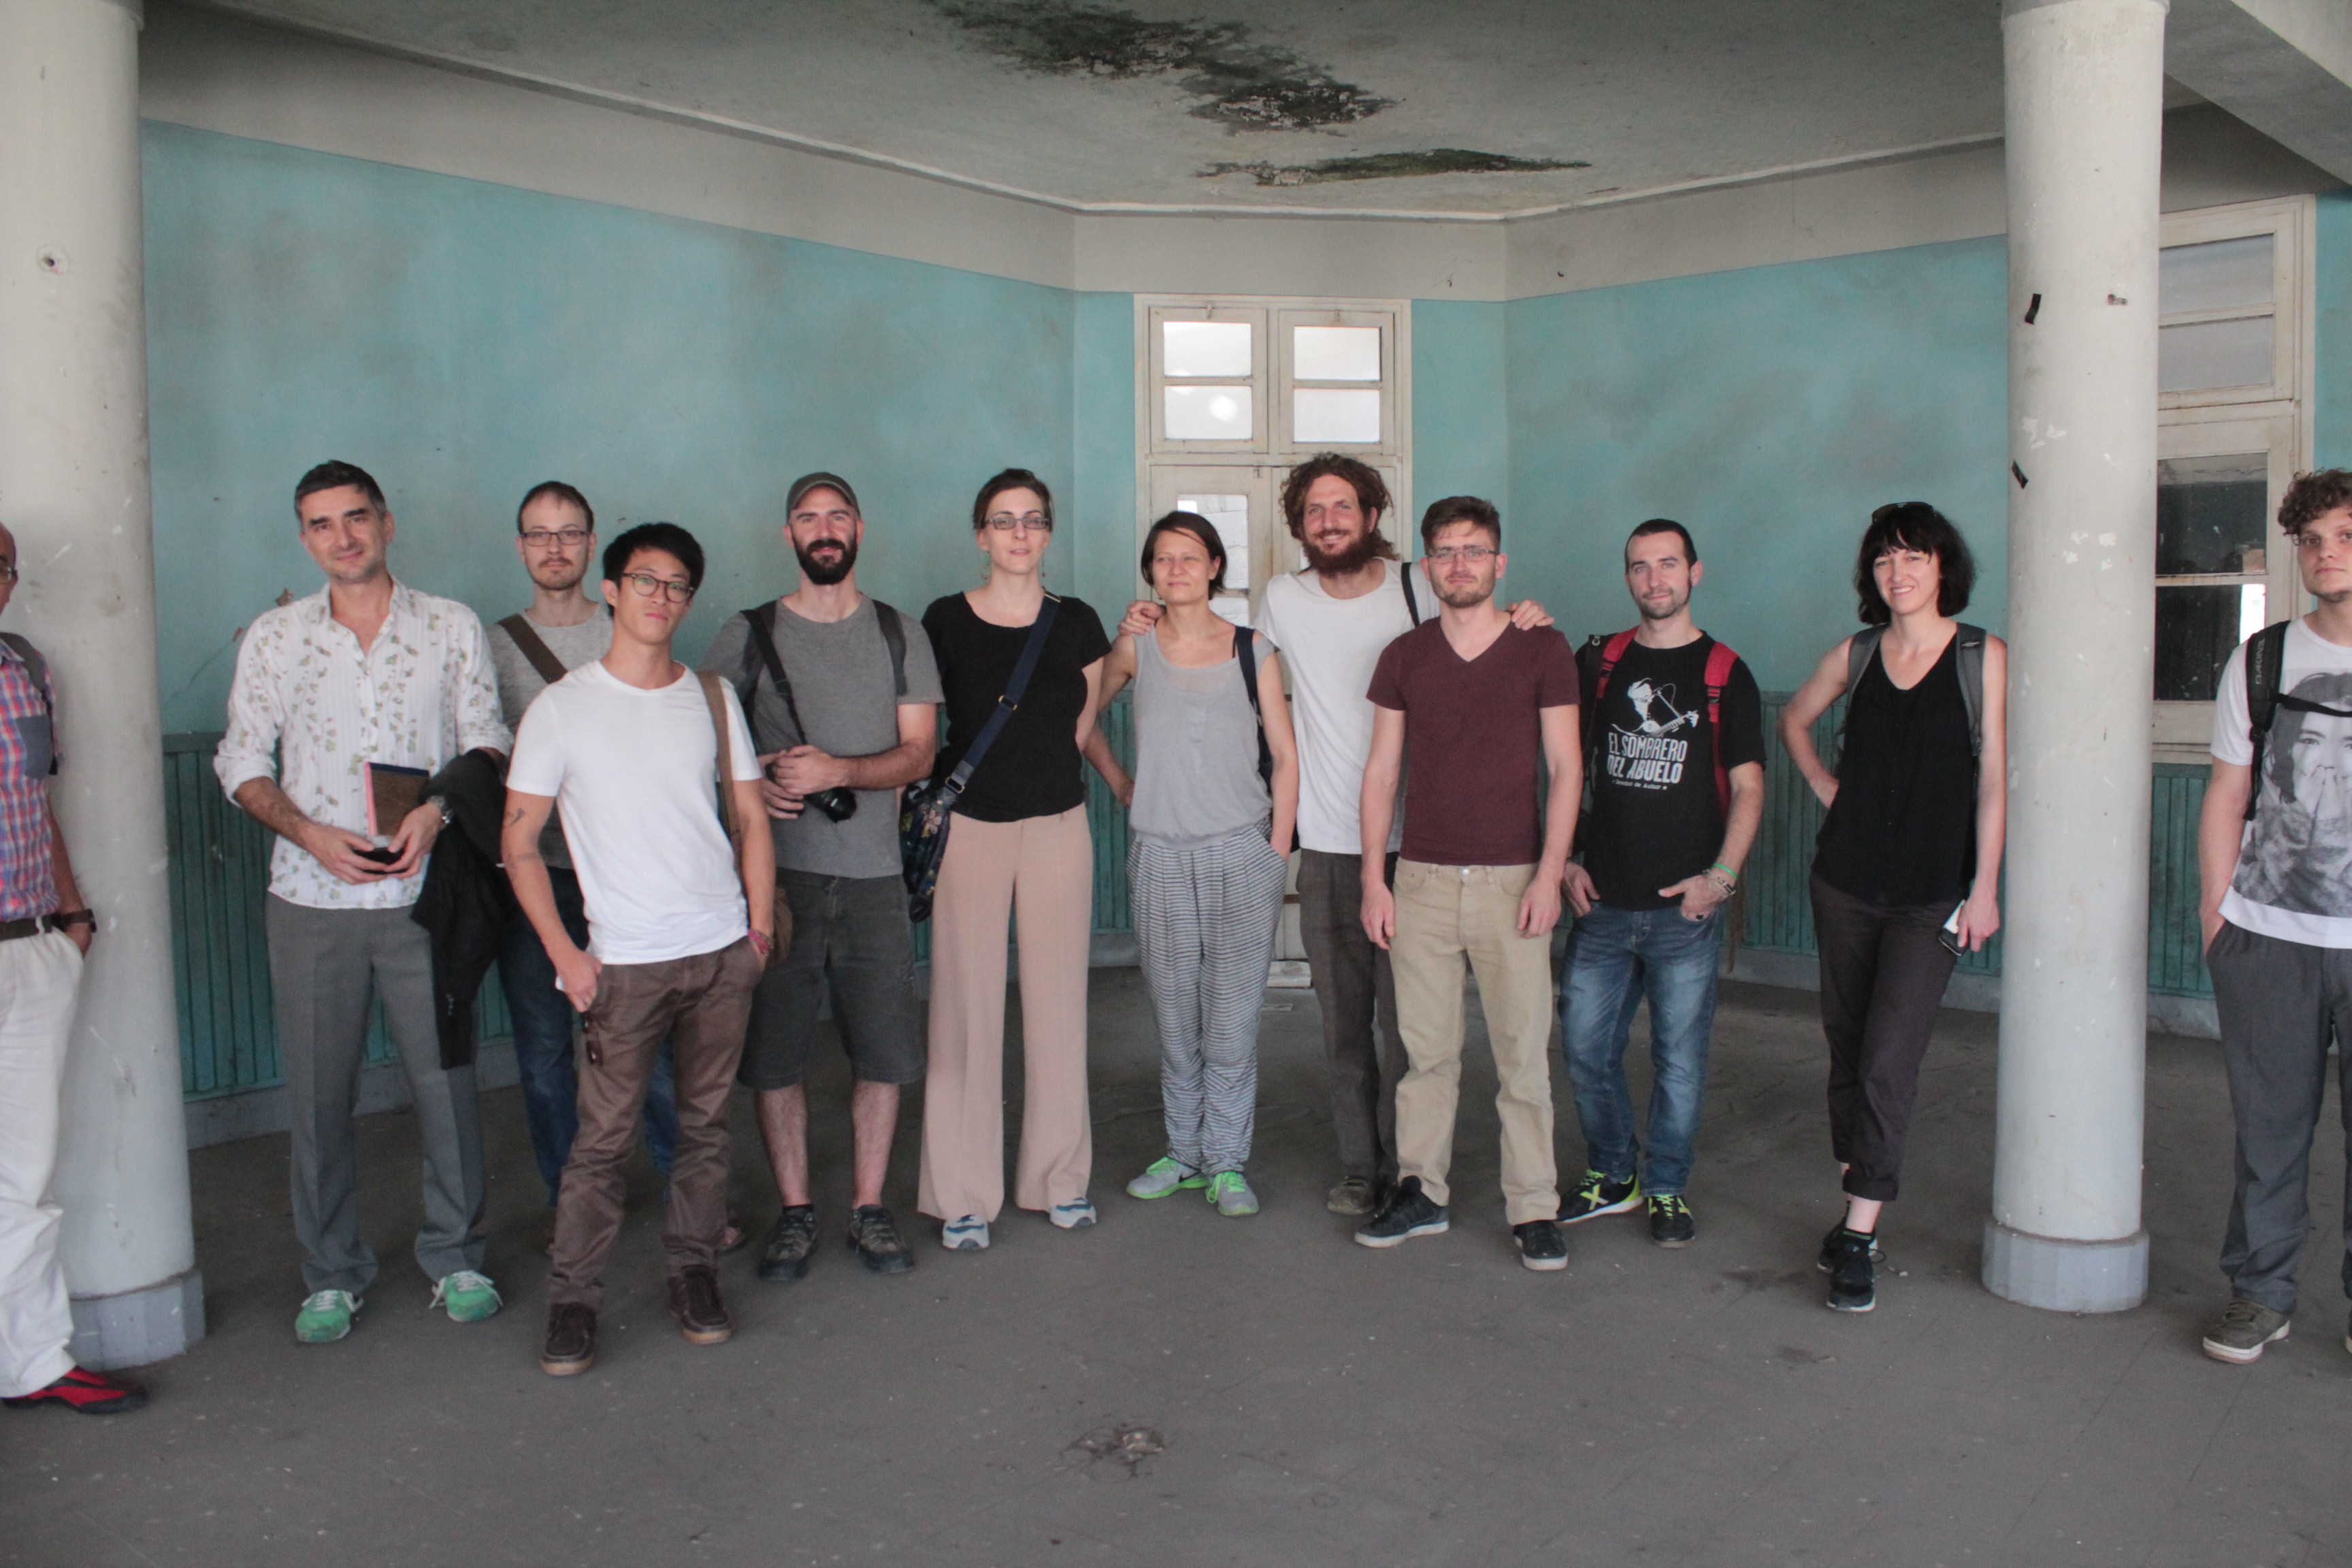 Location, Location, Location ~ group portrait, including lead tutors Tirdad Zolghadr, Doreen Mende and Rachel O'Reilly . Bandung, 2015